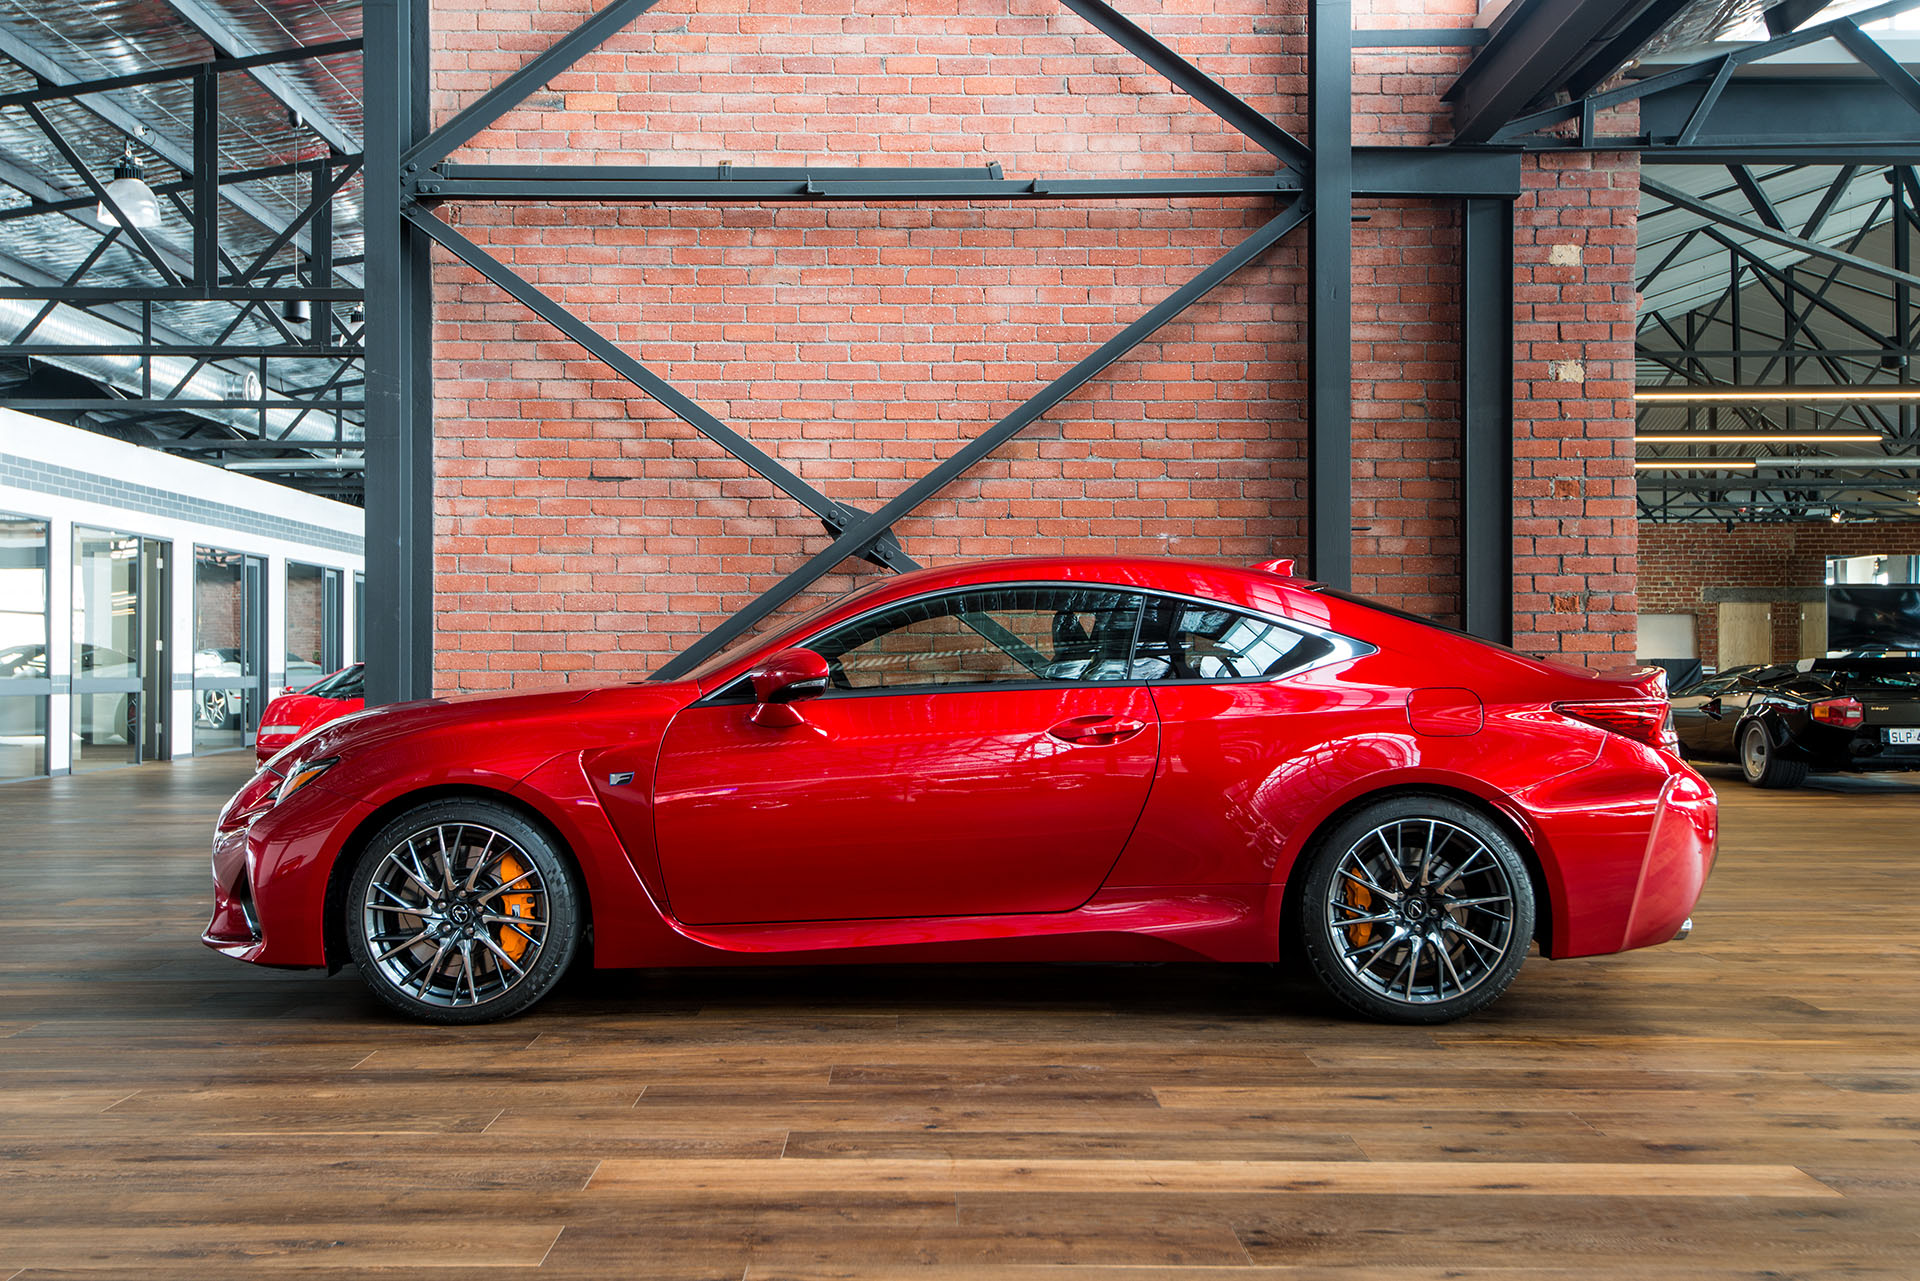 Real Cars For Sale >> 2016 Lexus RCF Coupe - Richmonds - Classic and Prestige ...